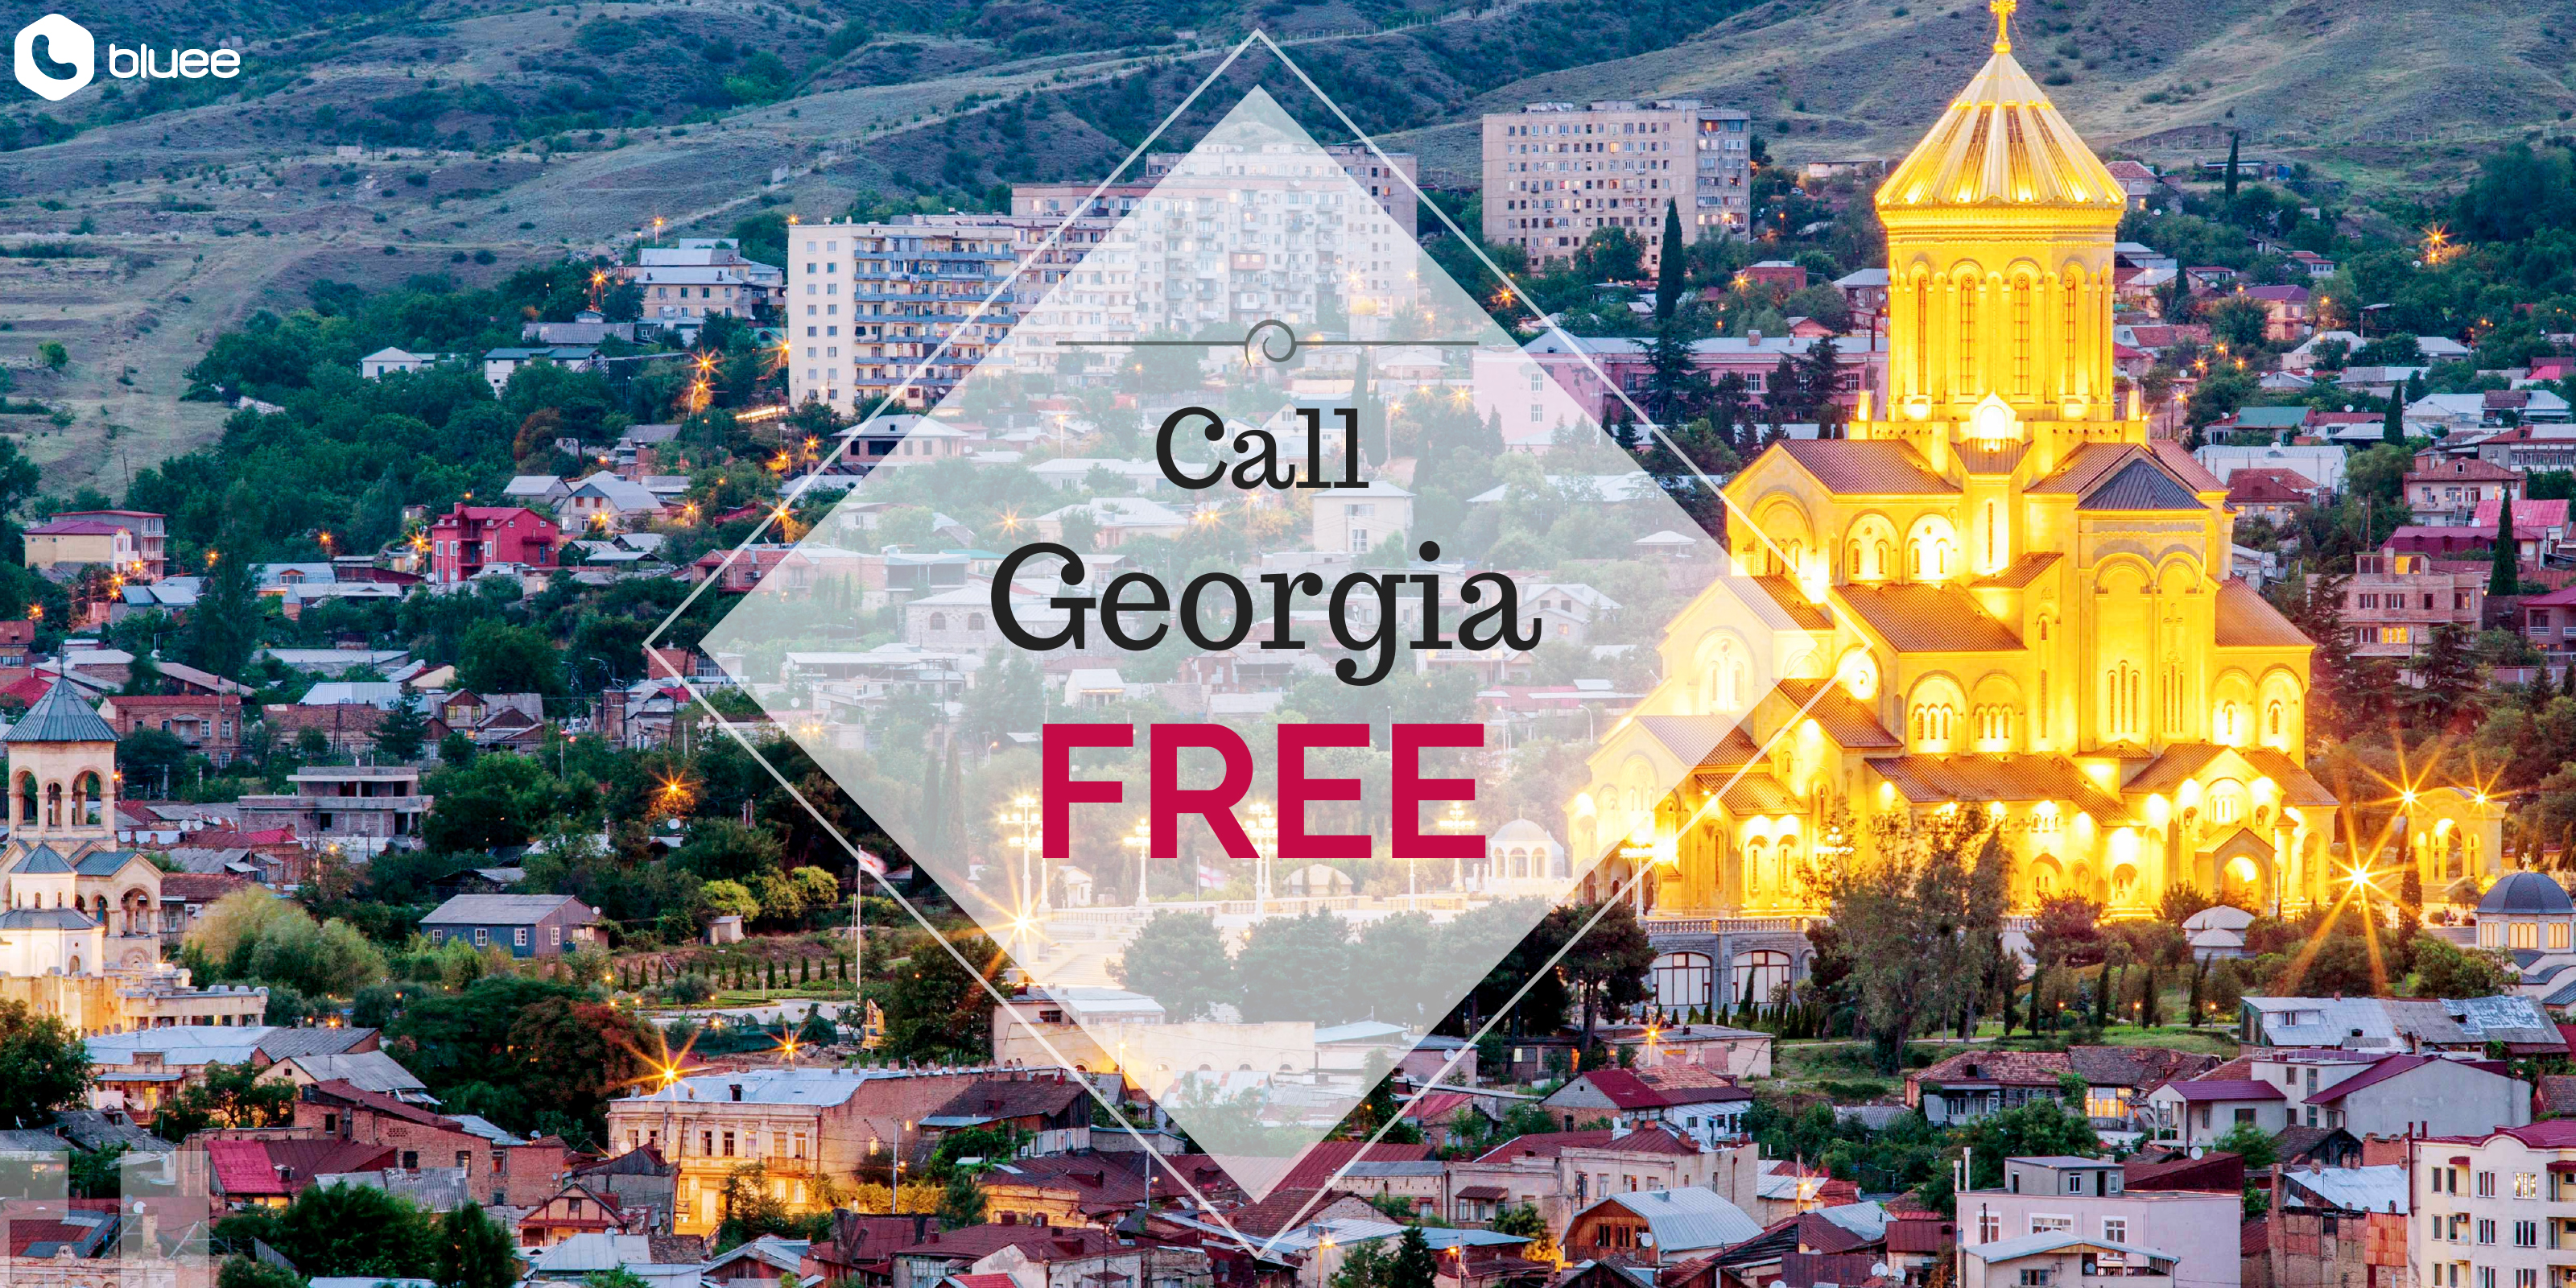 Free Friday: Call Georgia For FREE